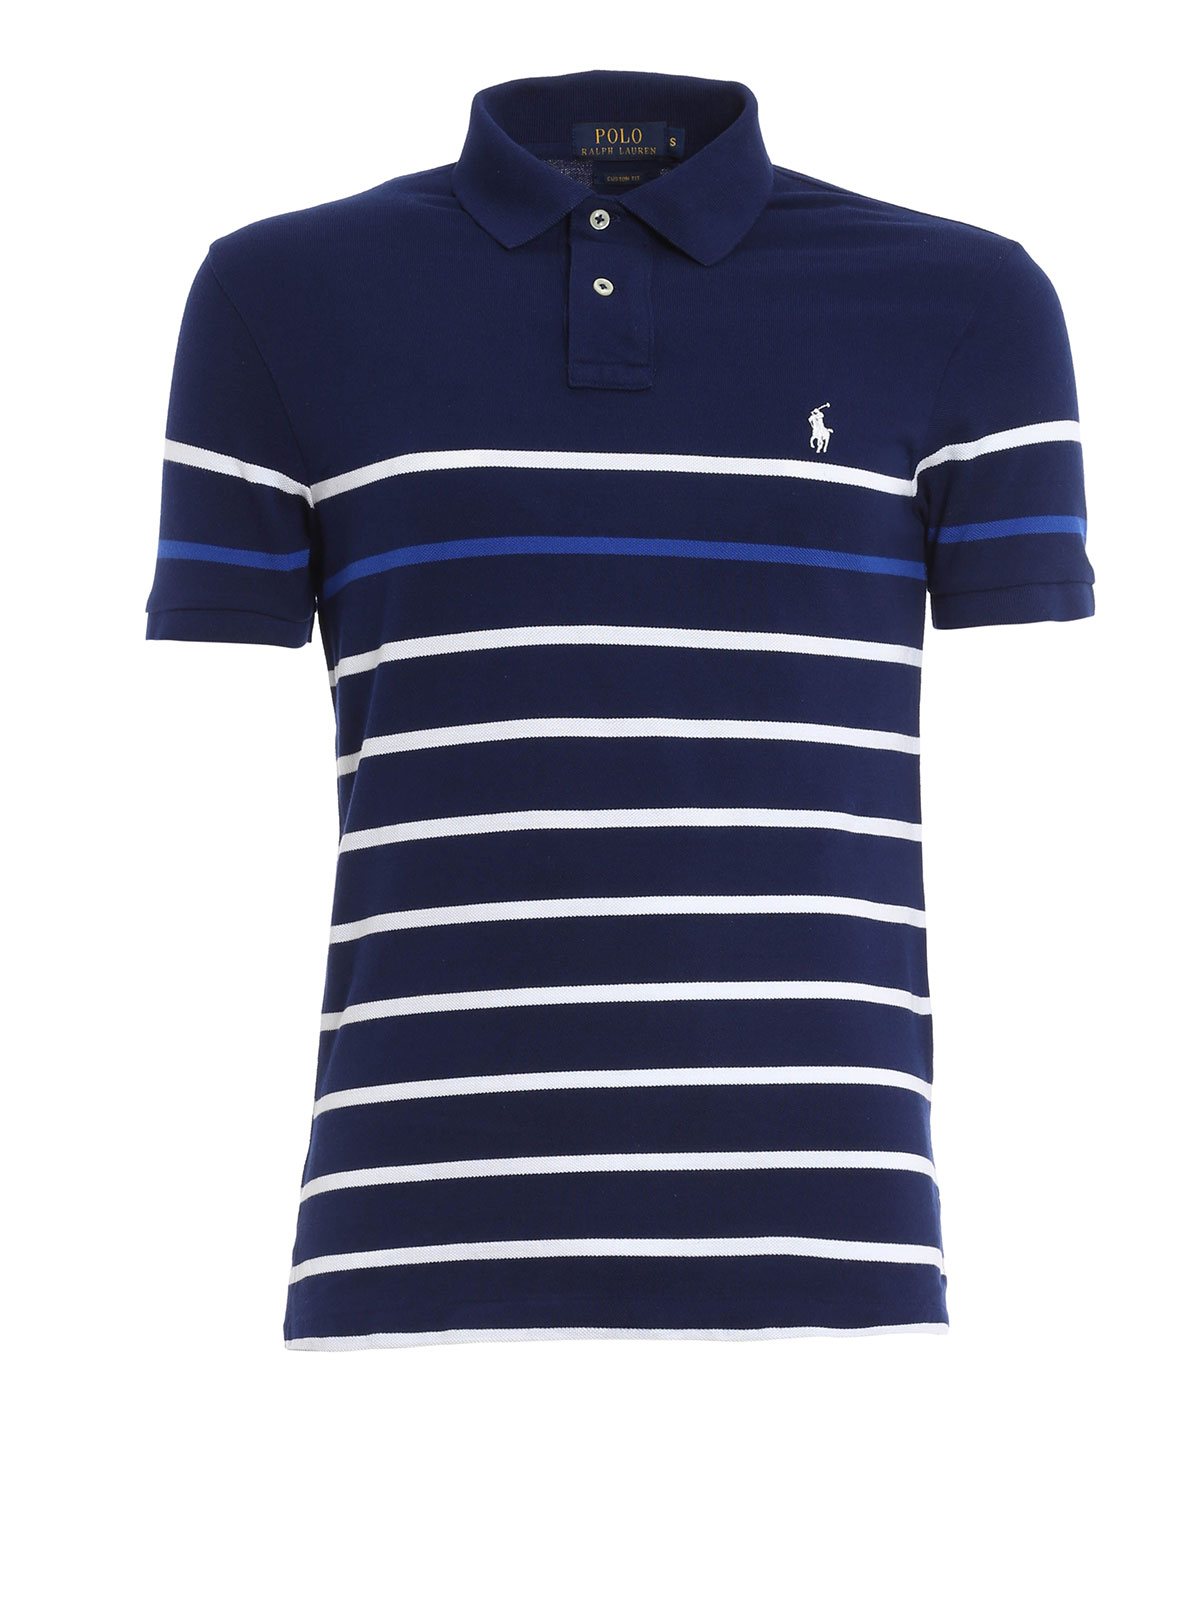 striped cotton pique polo shirt by polo ralph lauren. Black Bedroom Furniture Sets. Home Design Ideas